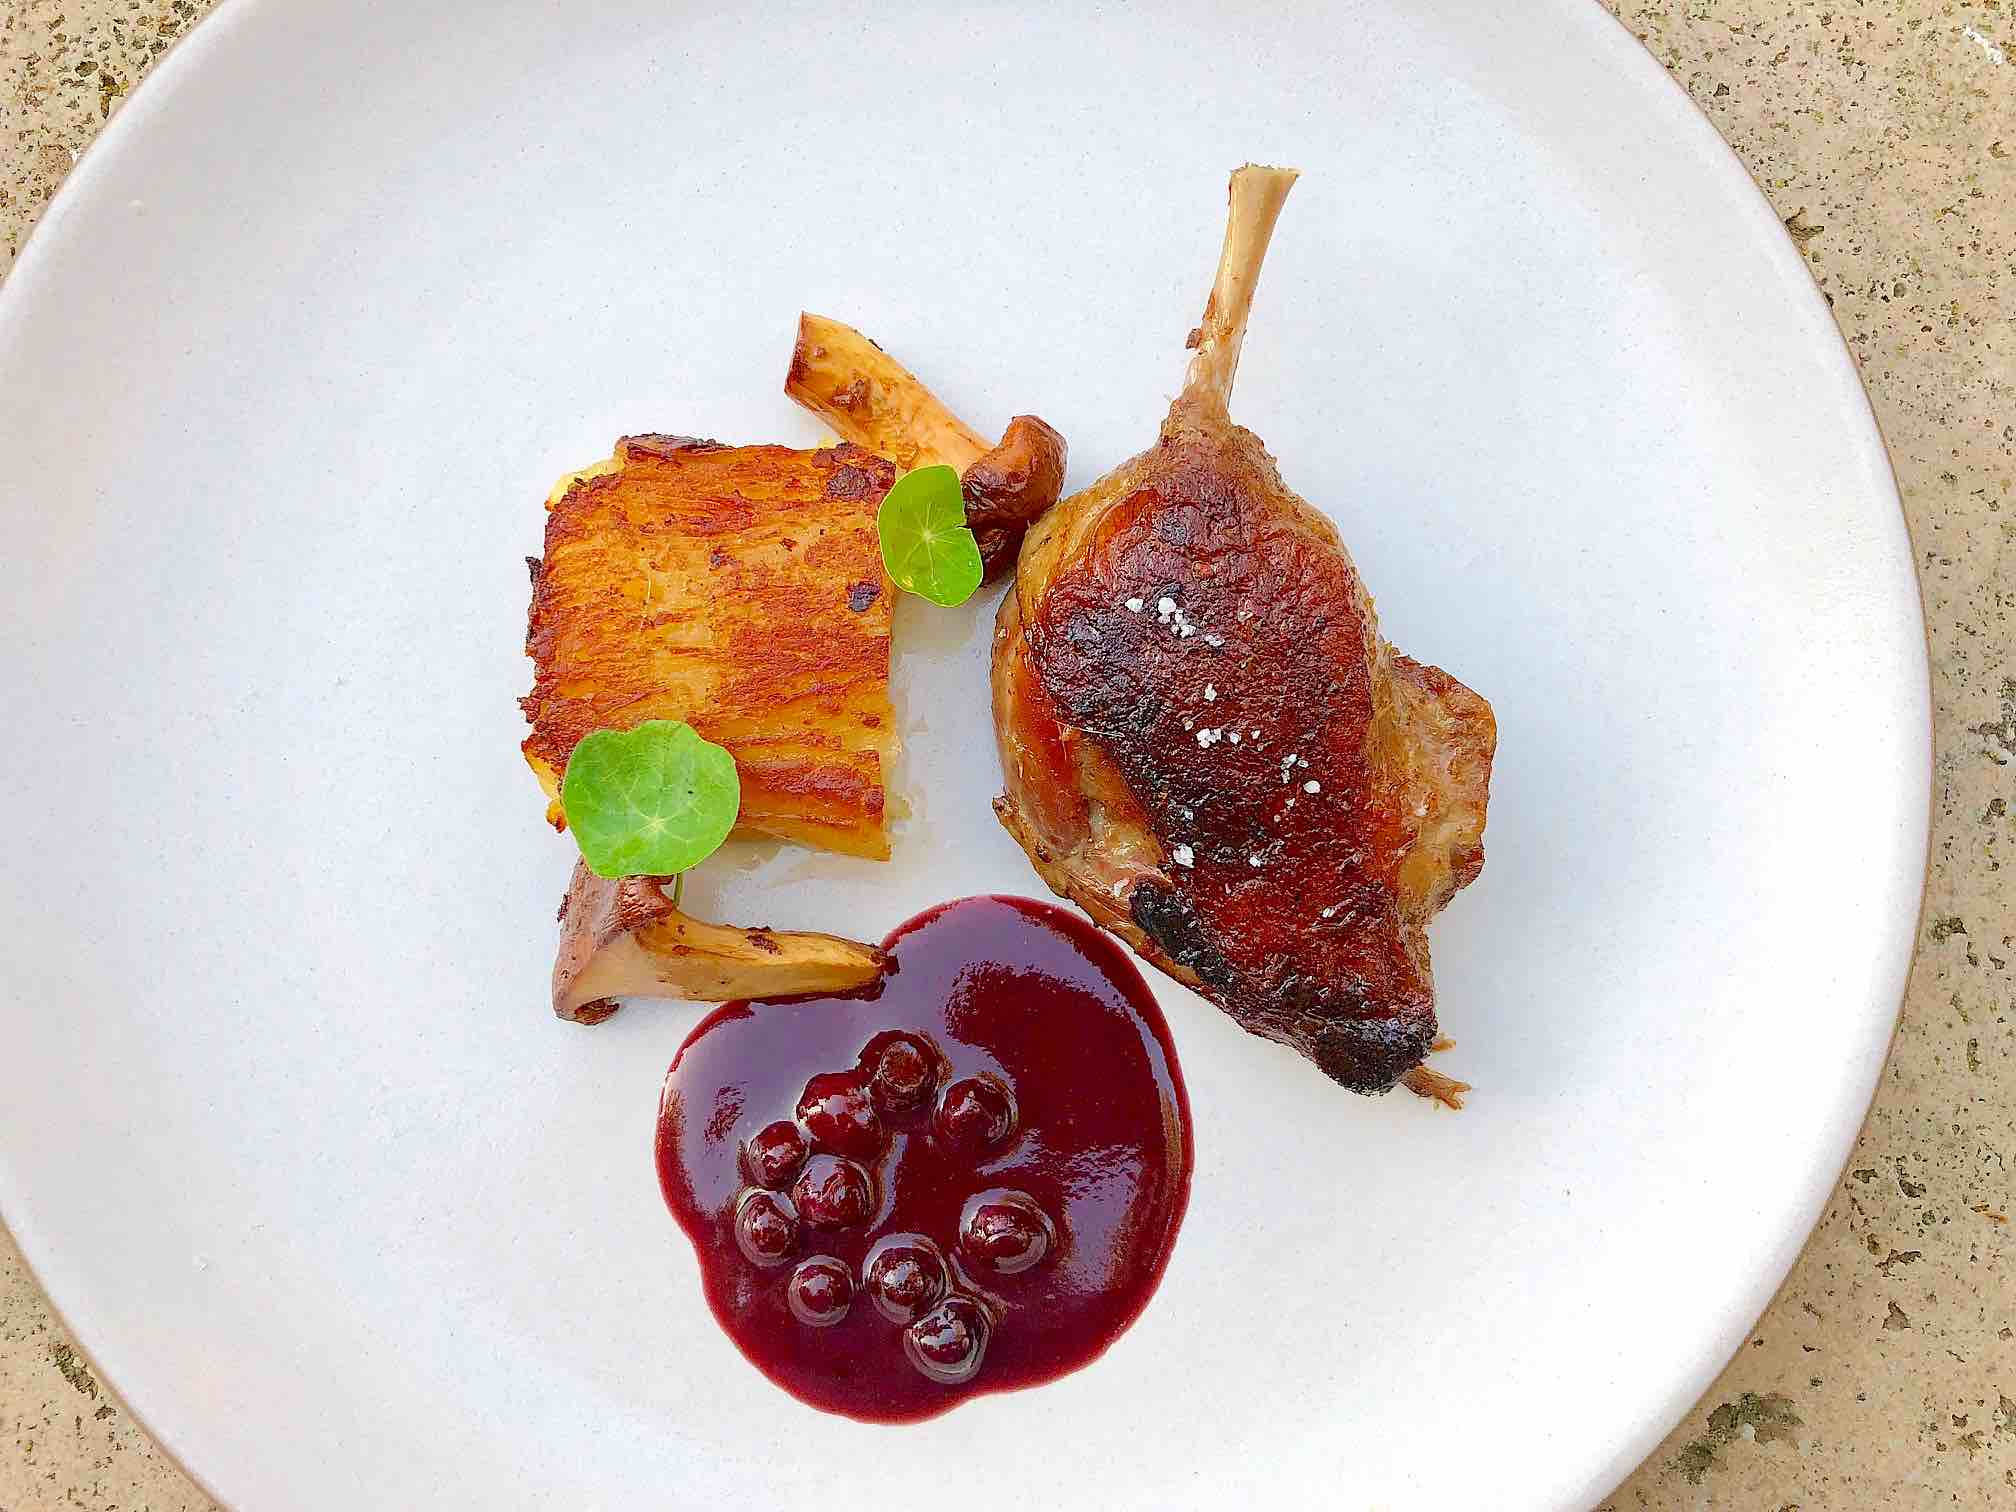 Duck confit with huckleberry and scalloped potatoes